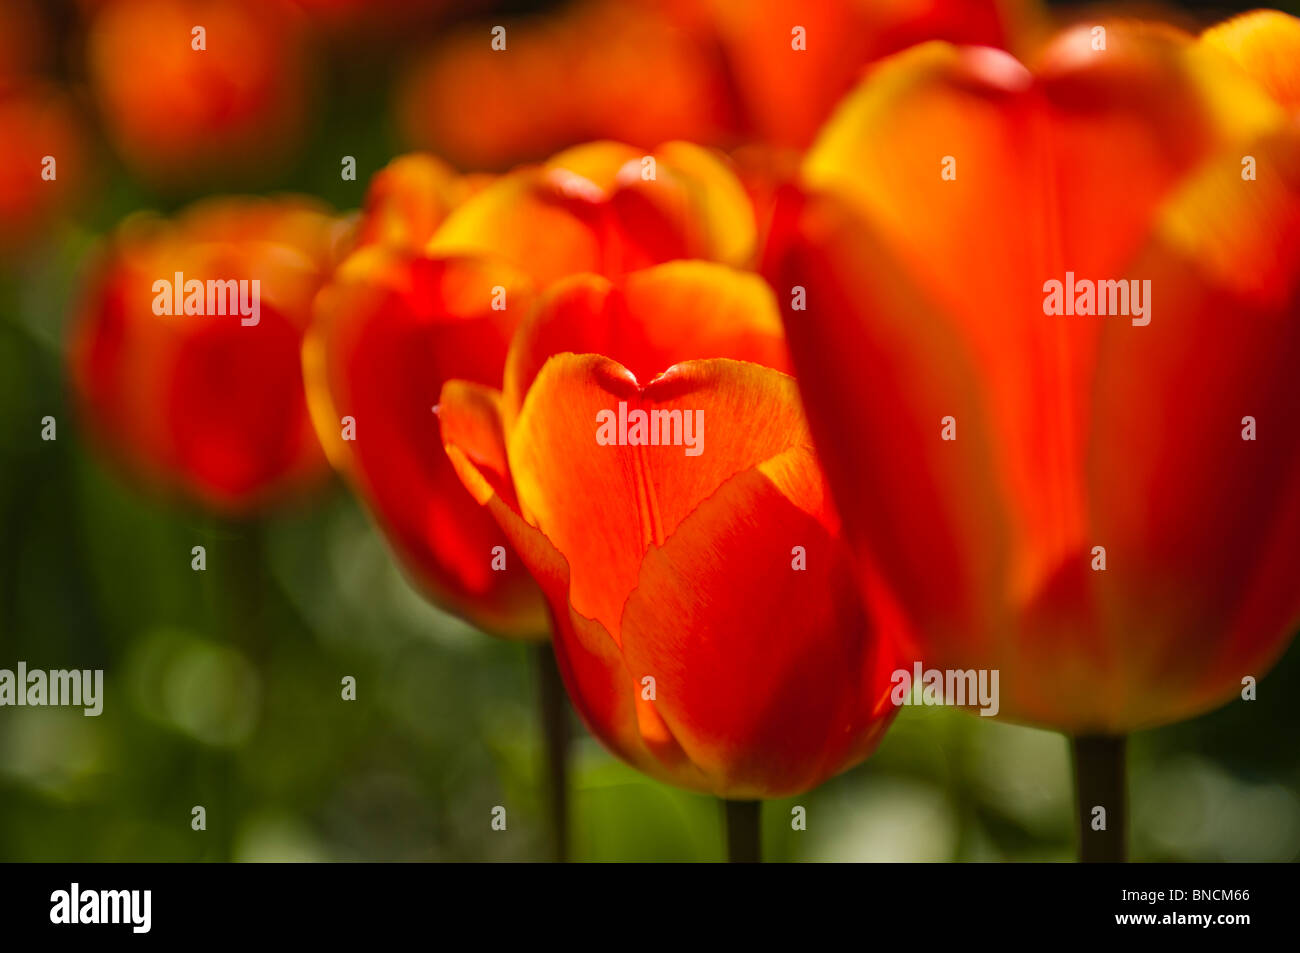 Closeup of red tulips - Stock Image